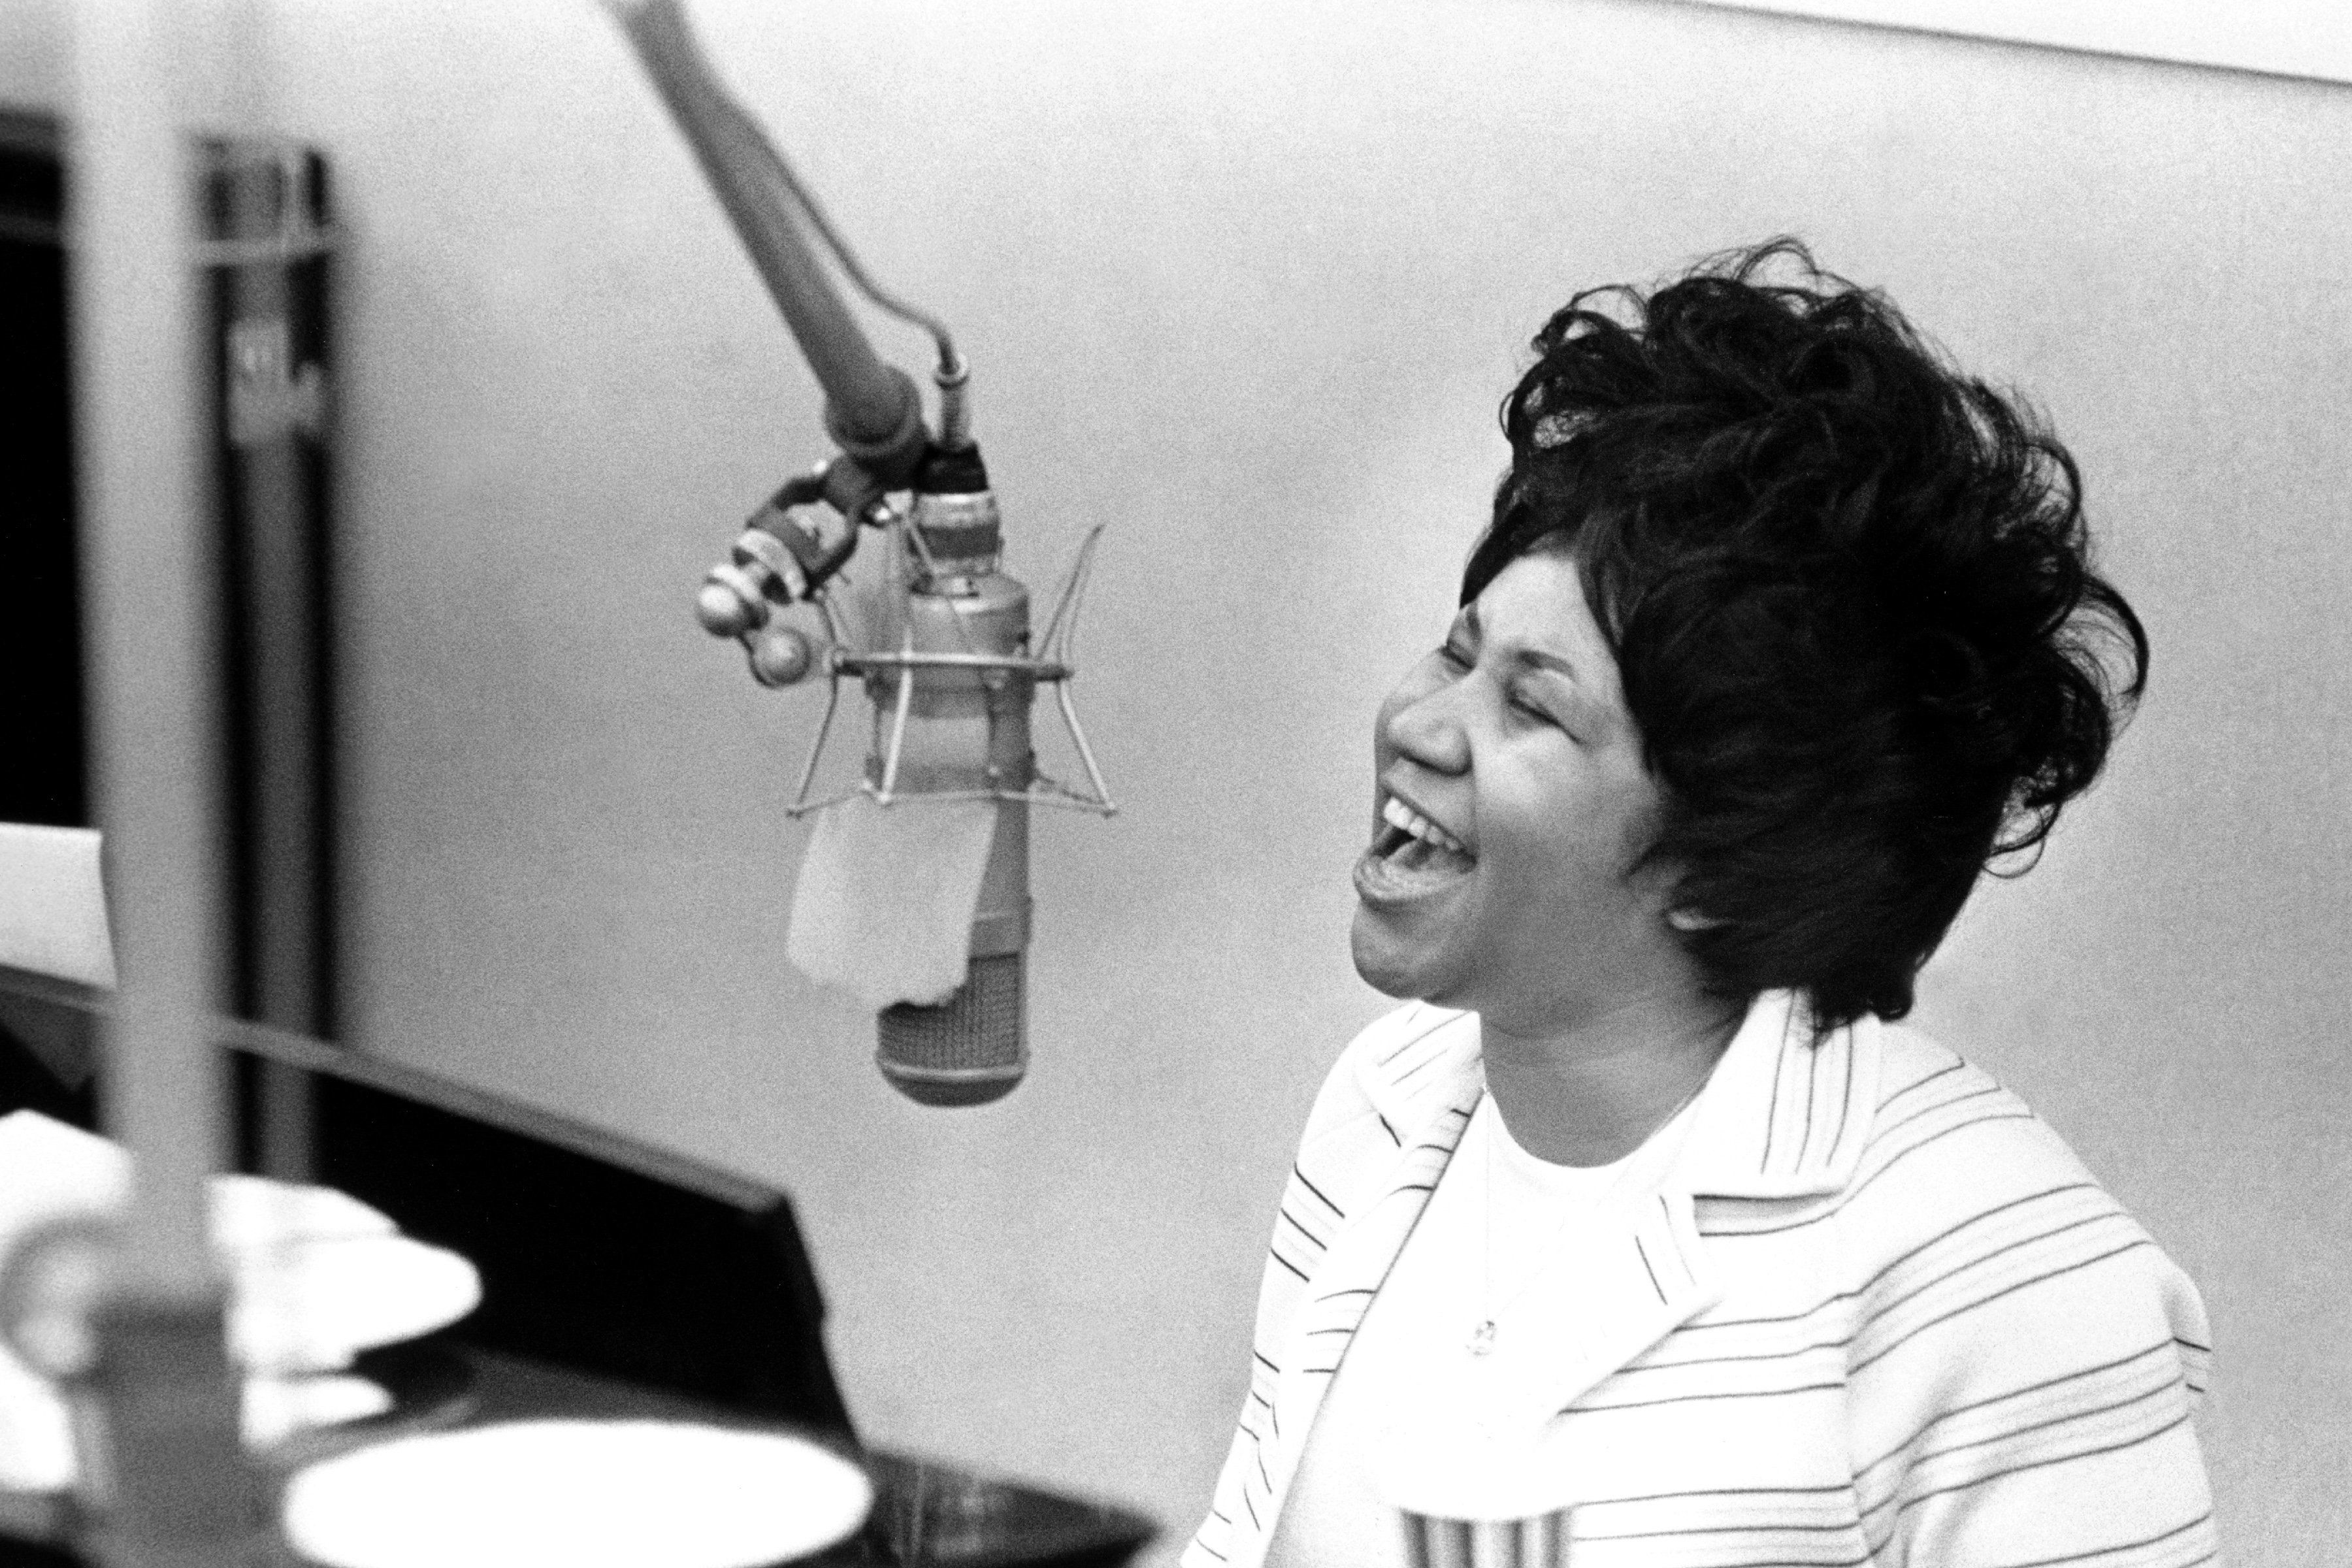 NEW YORK - JANUARY 10: Queen of soul Aretha Franklin during 'The Weight' recording session in the Atlantic Records recording studio on January 10, 1969 in New York City, New York. (Photo by Michael Ochs Archives/Getty Images)